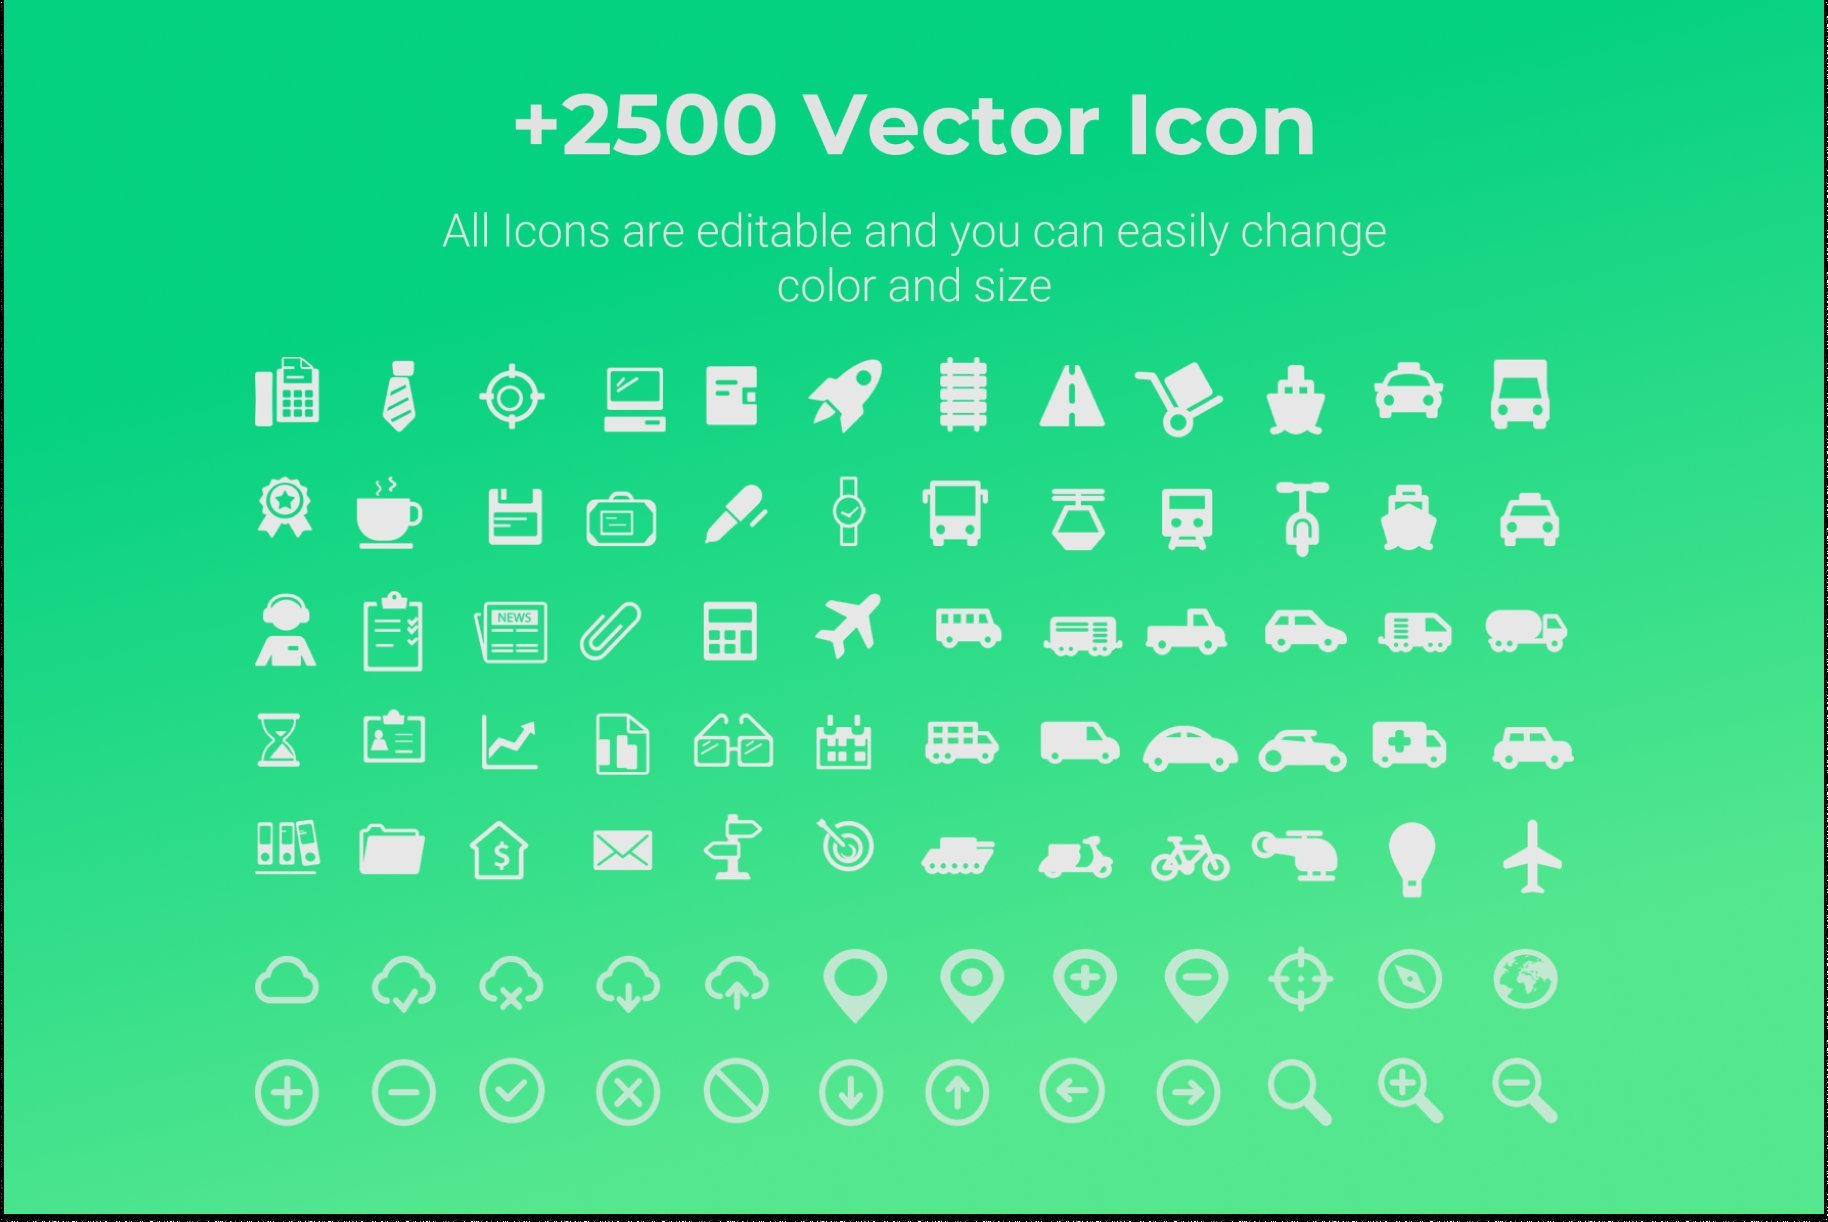 Here is a whole set of icons for a variety of presentation.